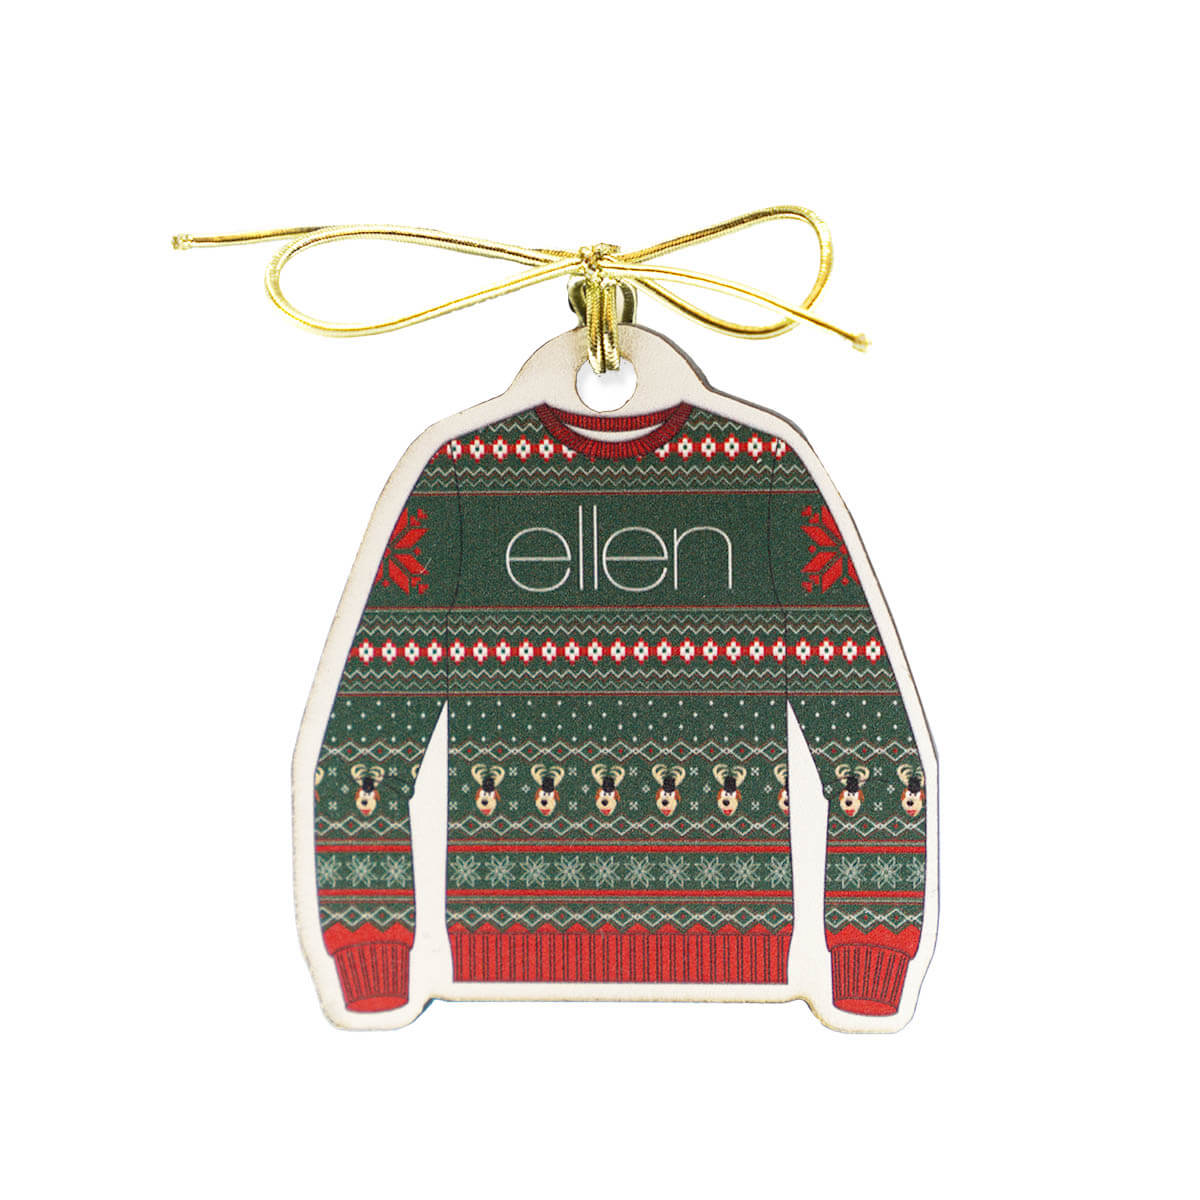 ellen Show Holiday Sweater Ornament